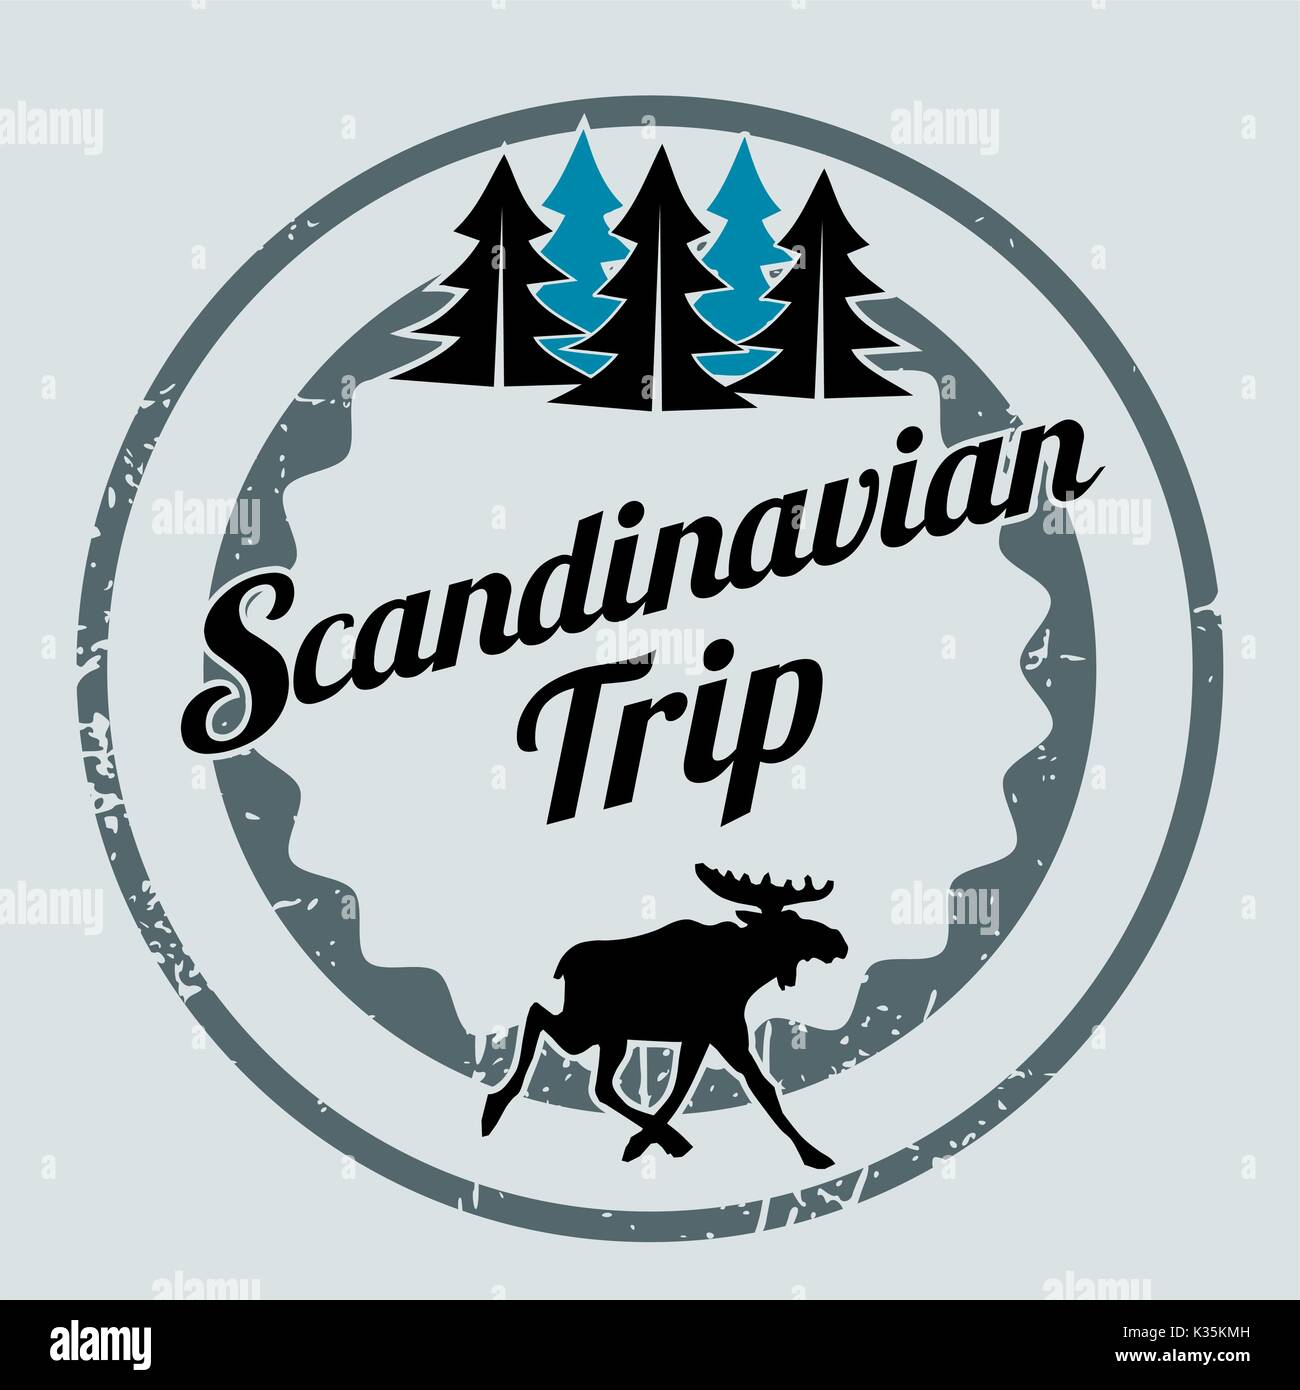 Scandinavian trip label with an elk, travel or vacation concept - Stock Vector